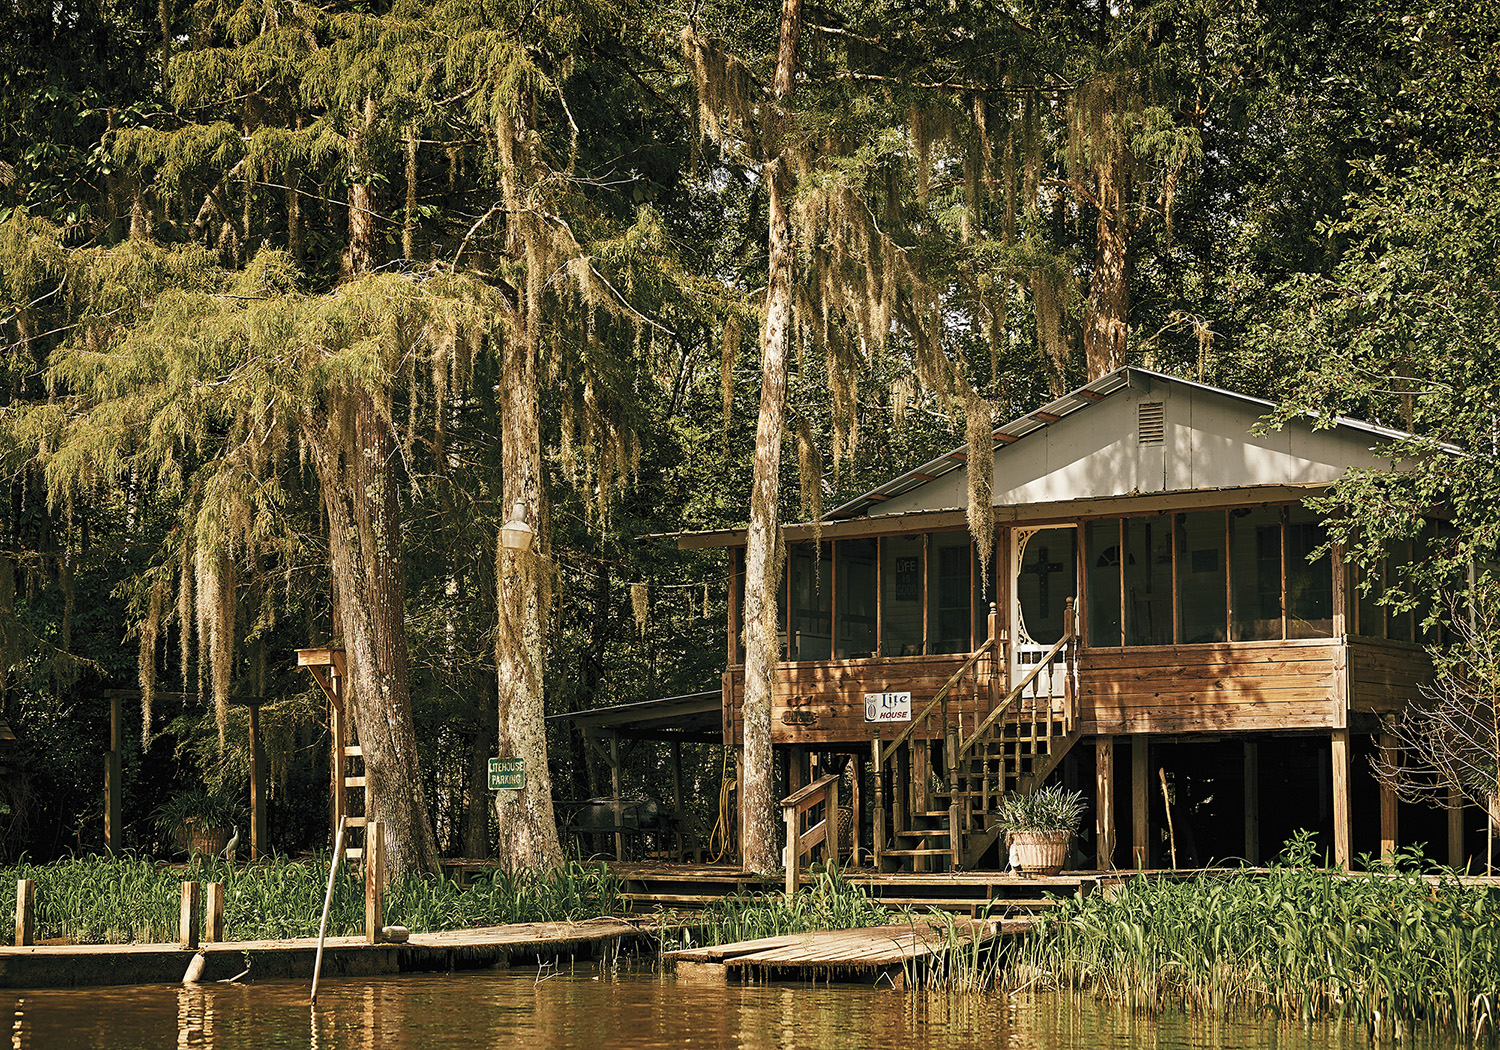 Swamp house of New-Orleans